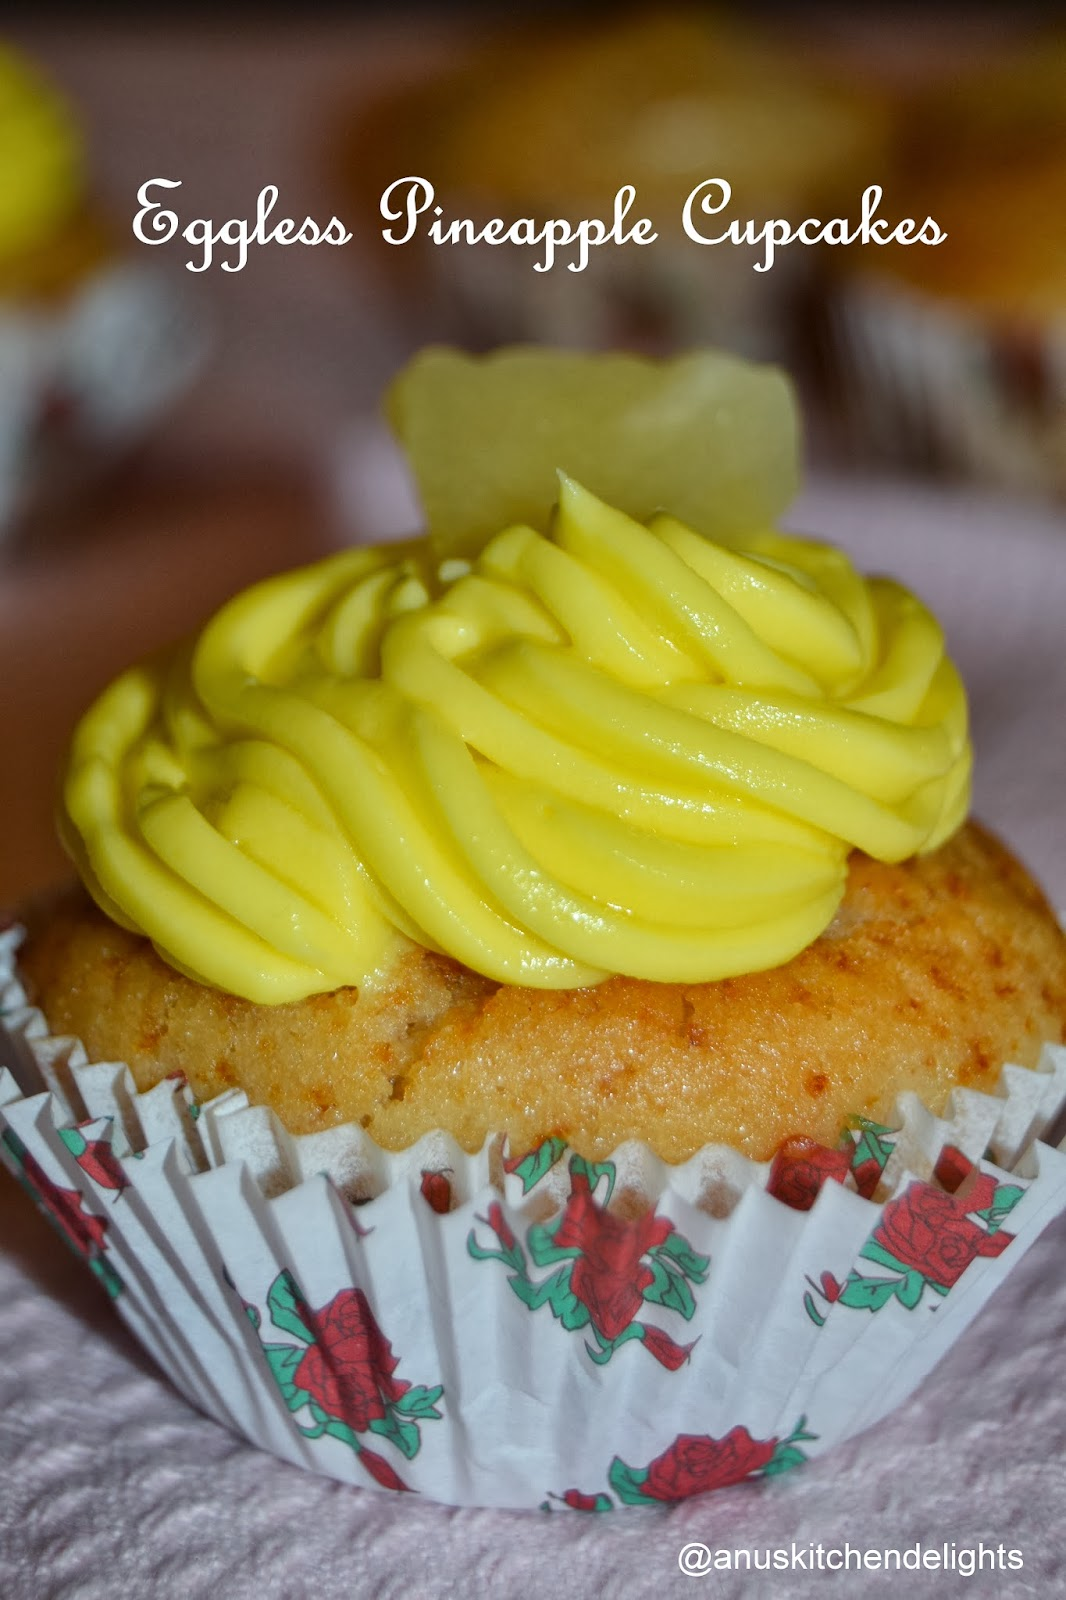 Eggless Pineapple Cupcakes